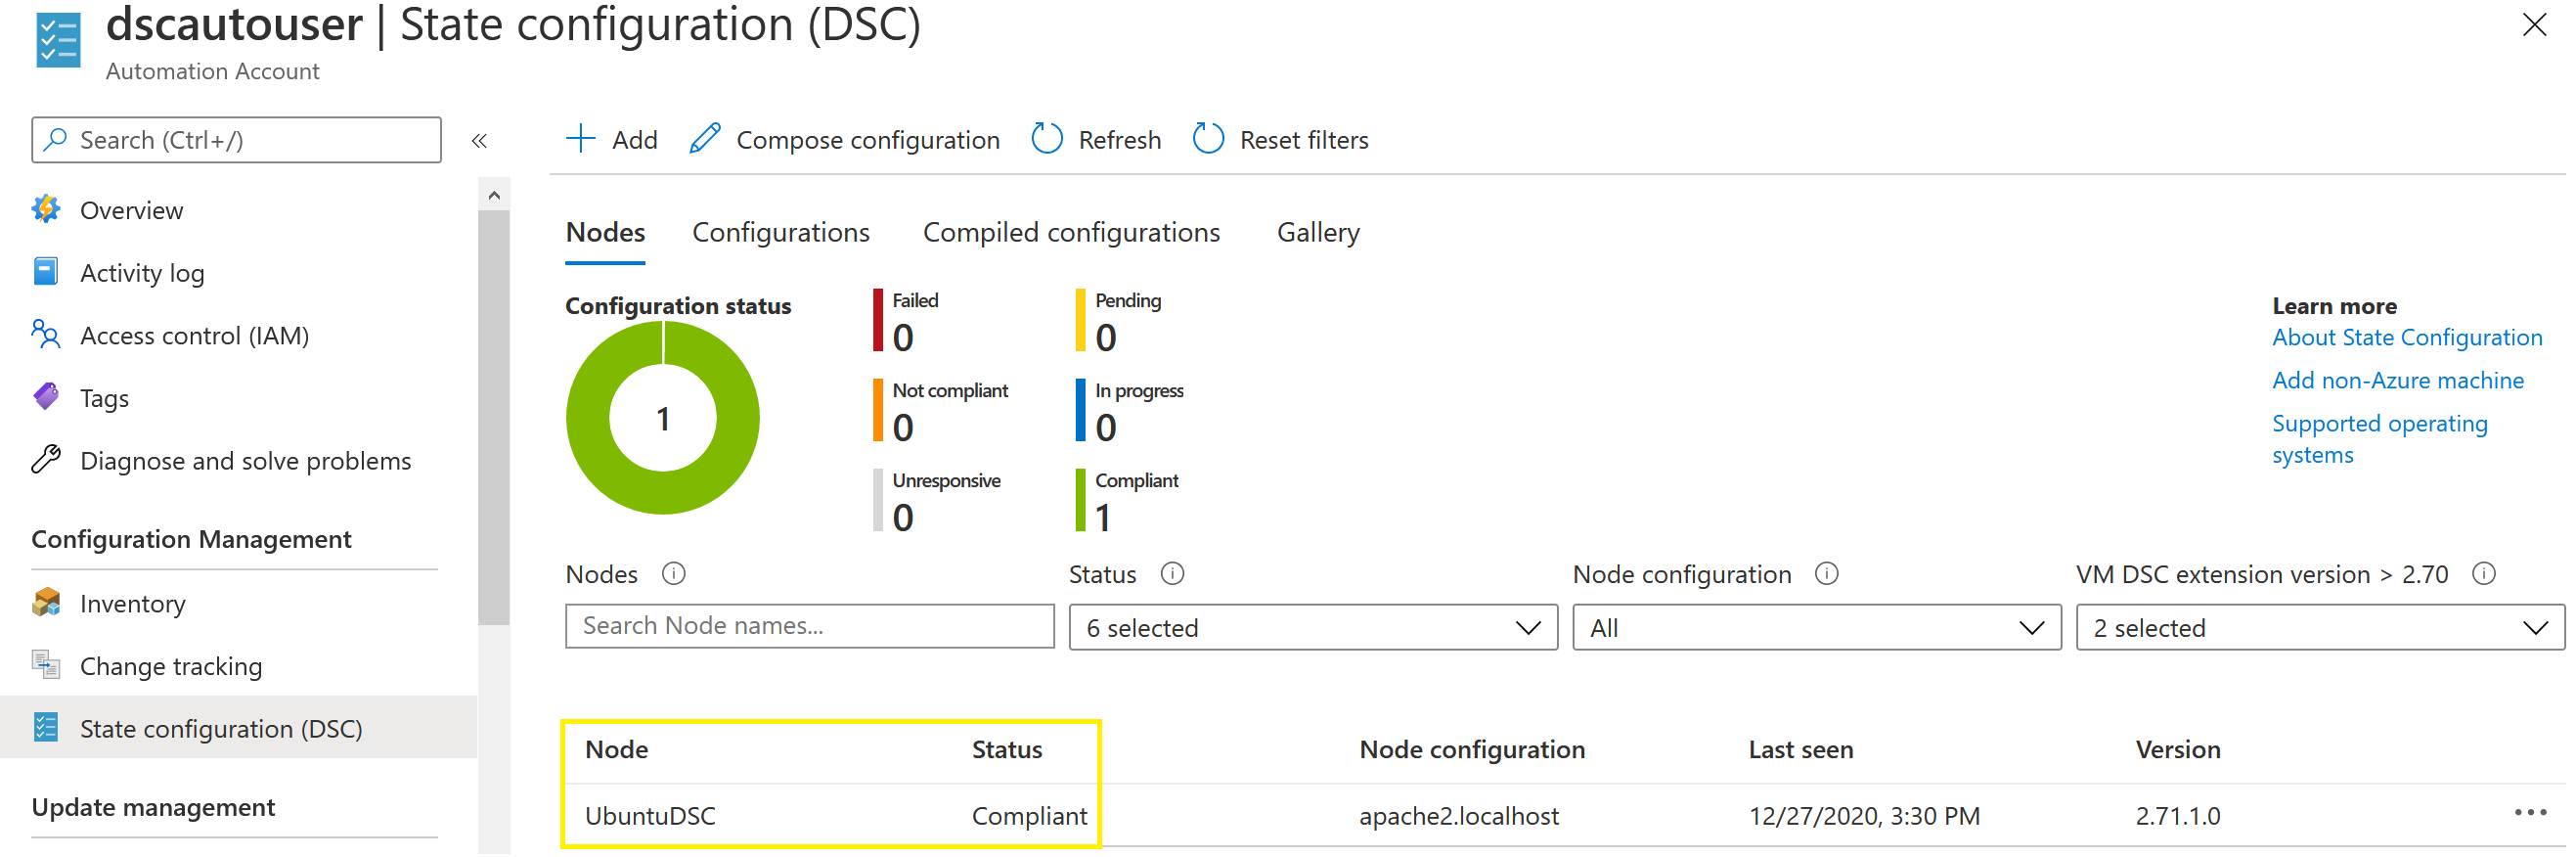 Azure State Configuration (DSC) menu displaying Compliant node